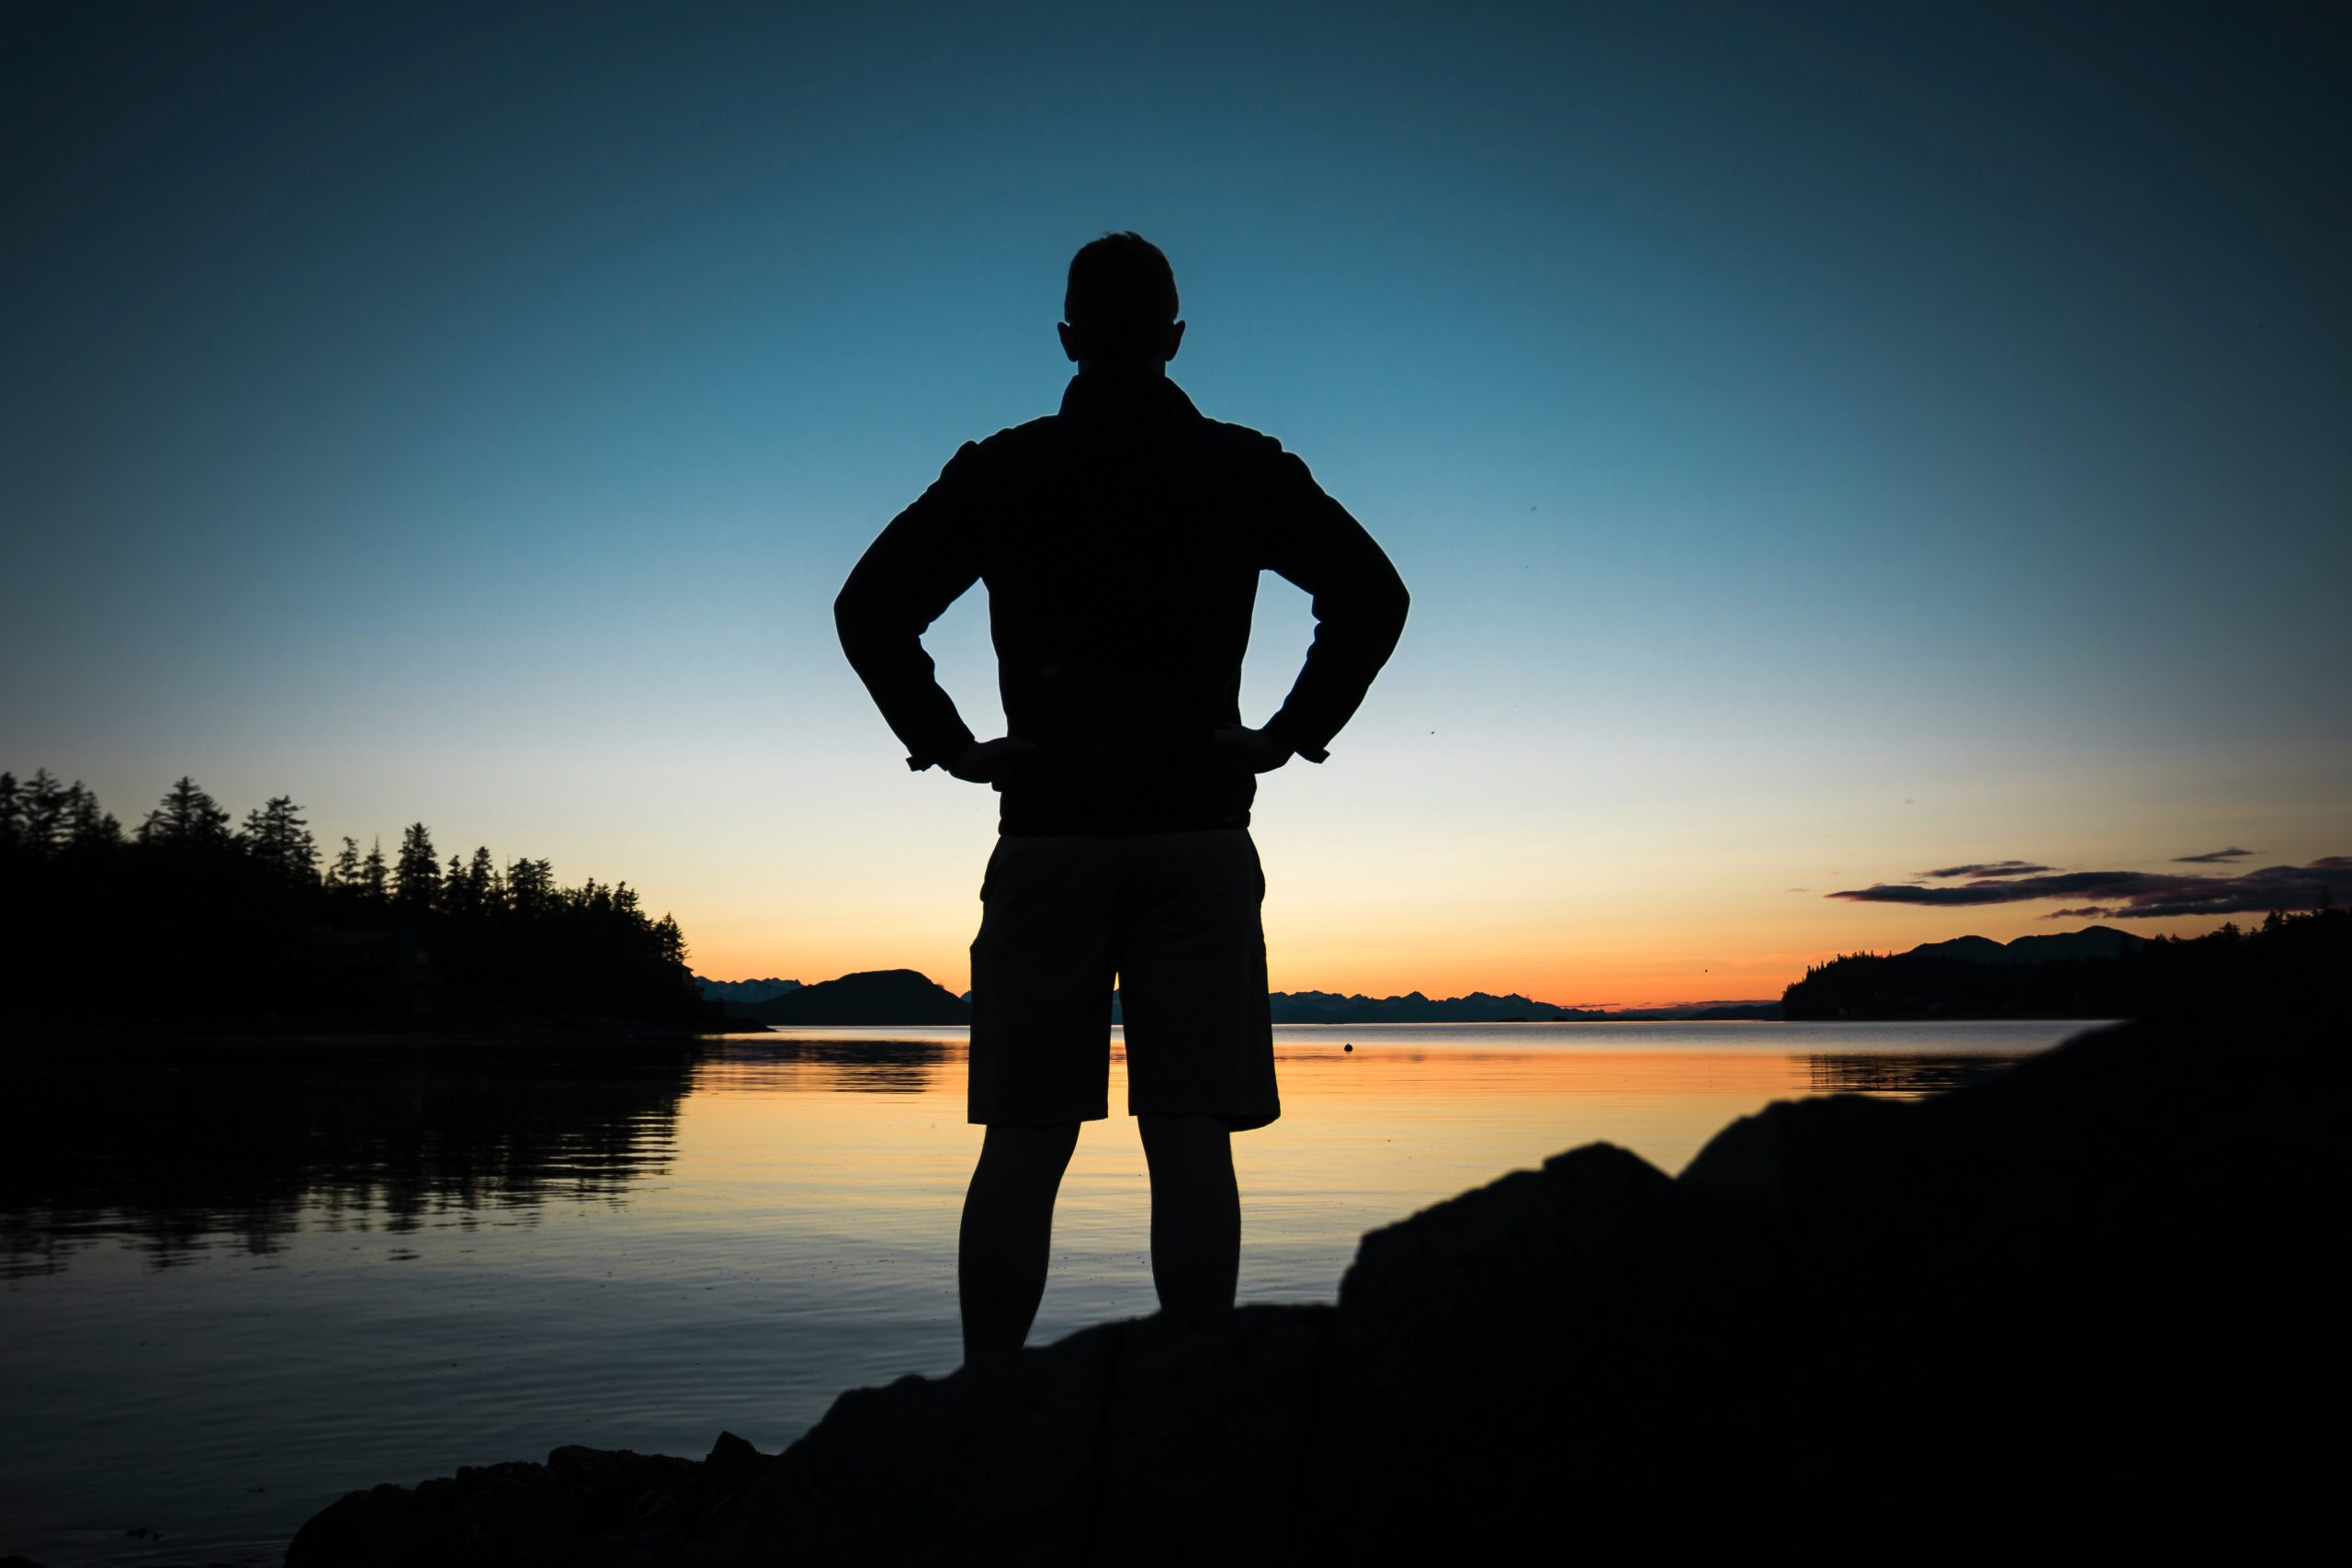 silhouette of a man near the shore looking out to the sunset, standing with his hands on his hips